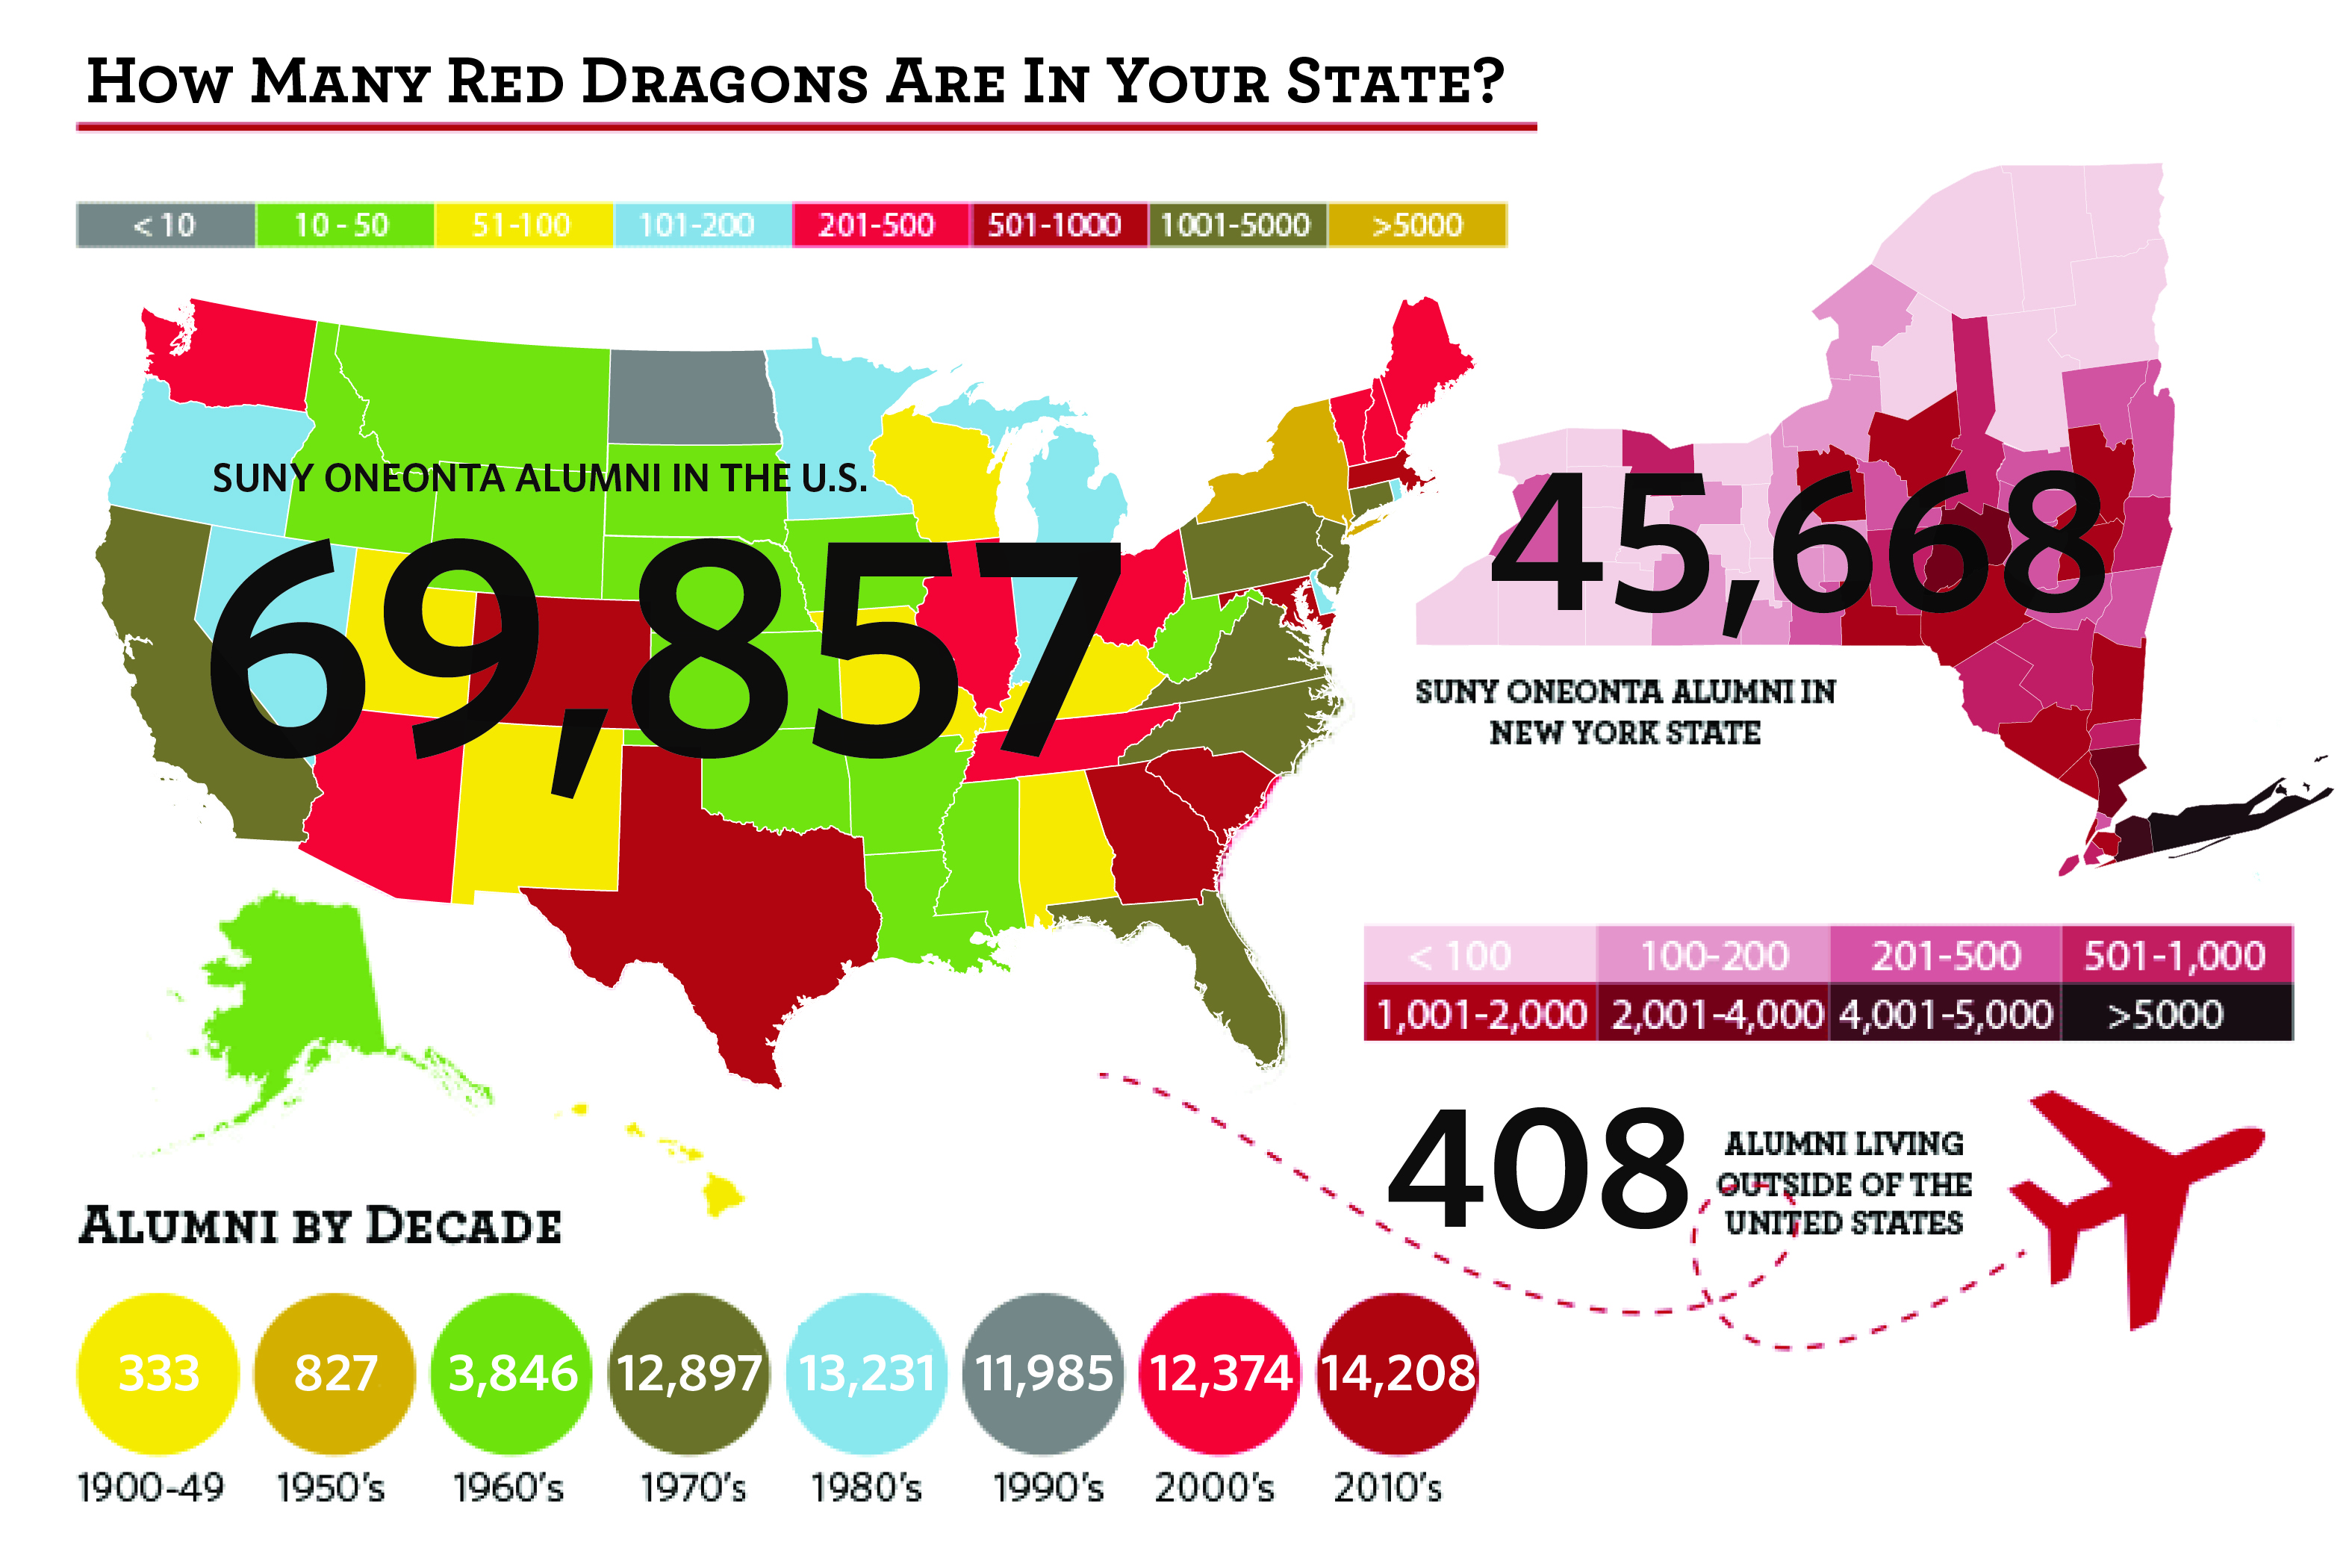 Where the Red Dragons Are Sept 2020